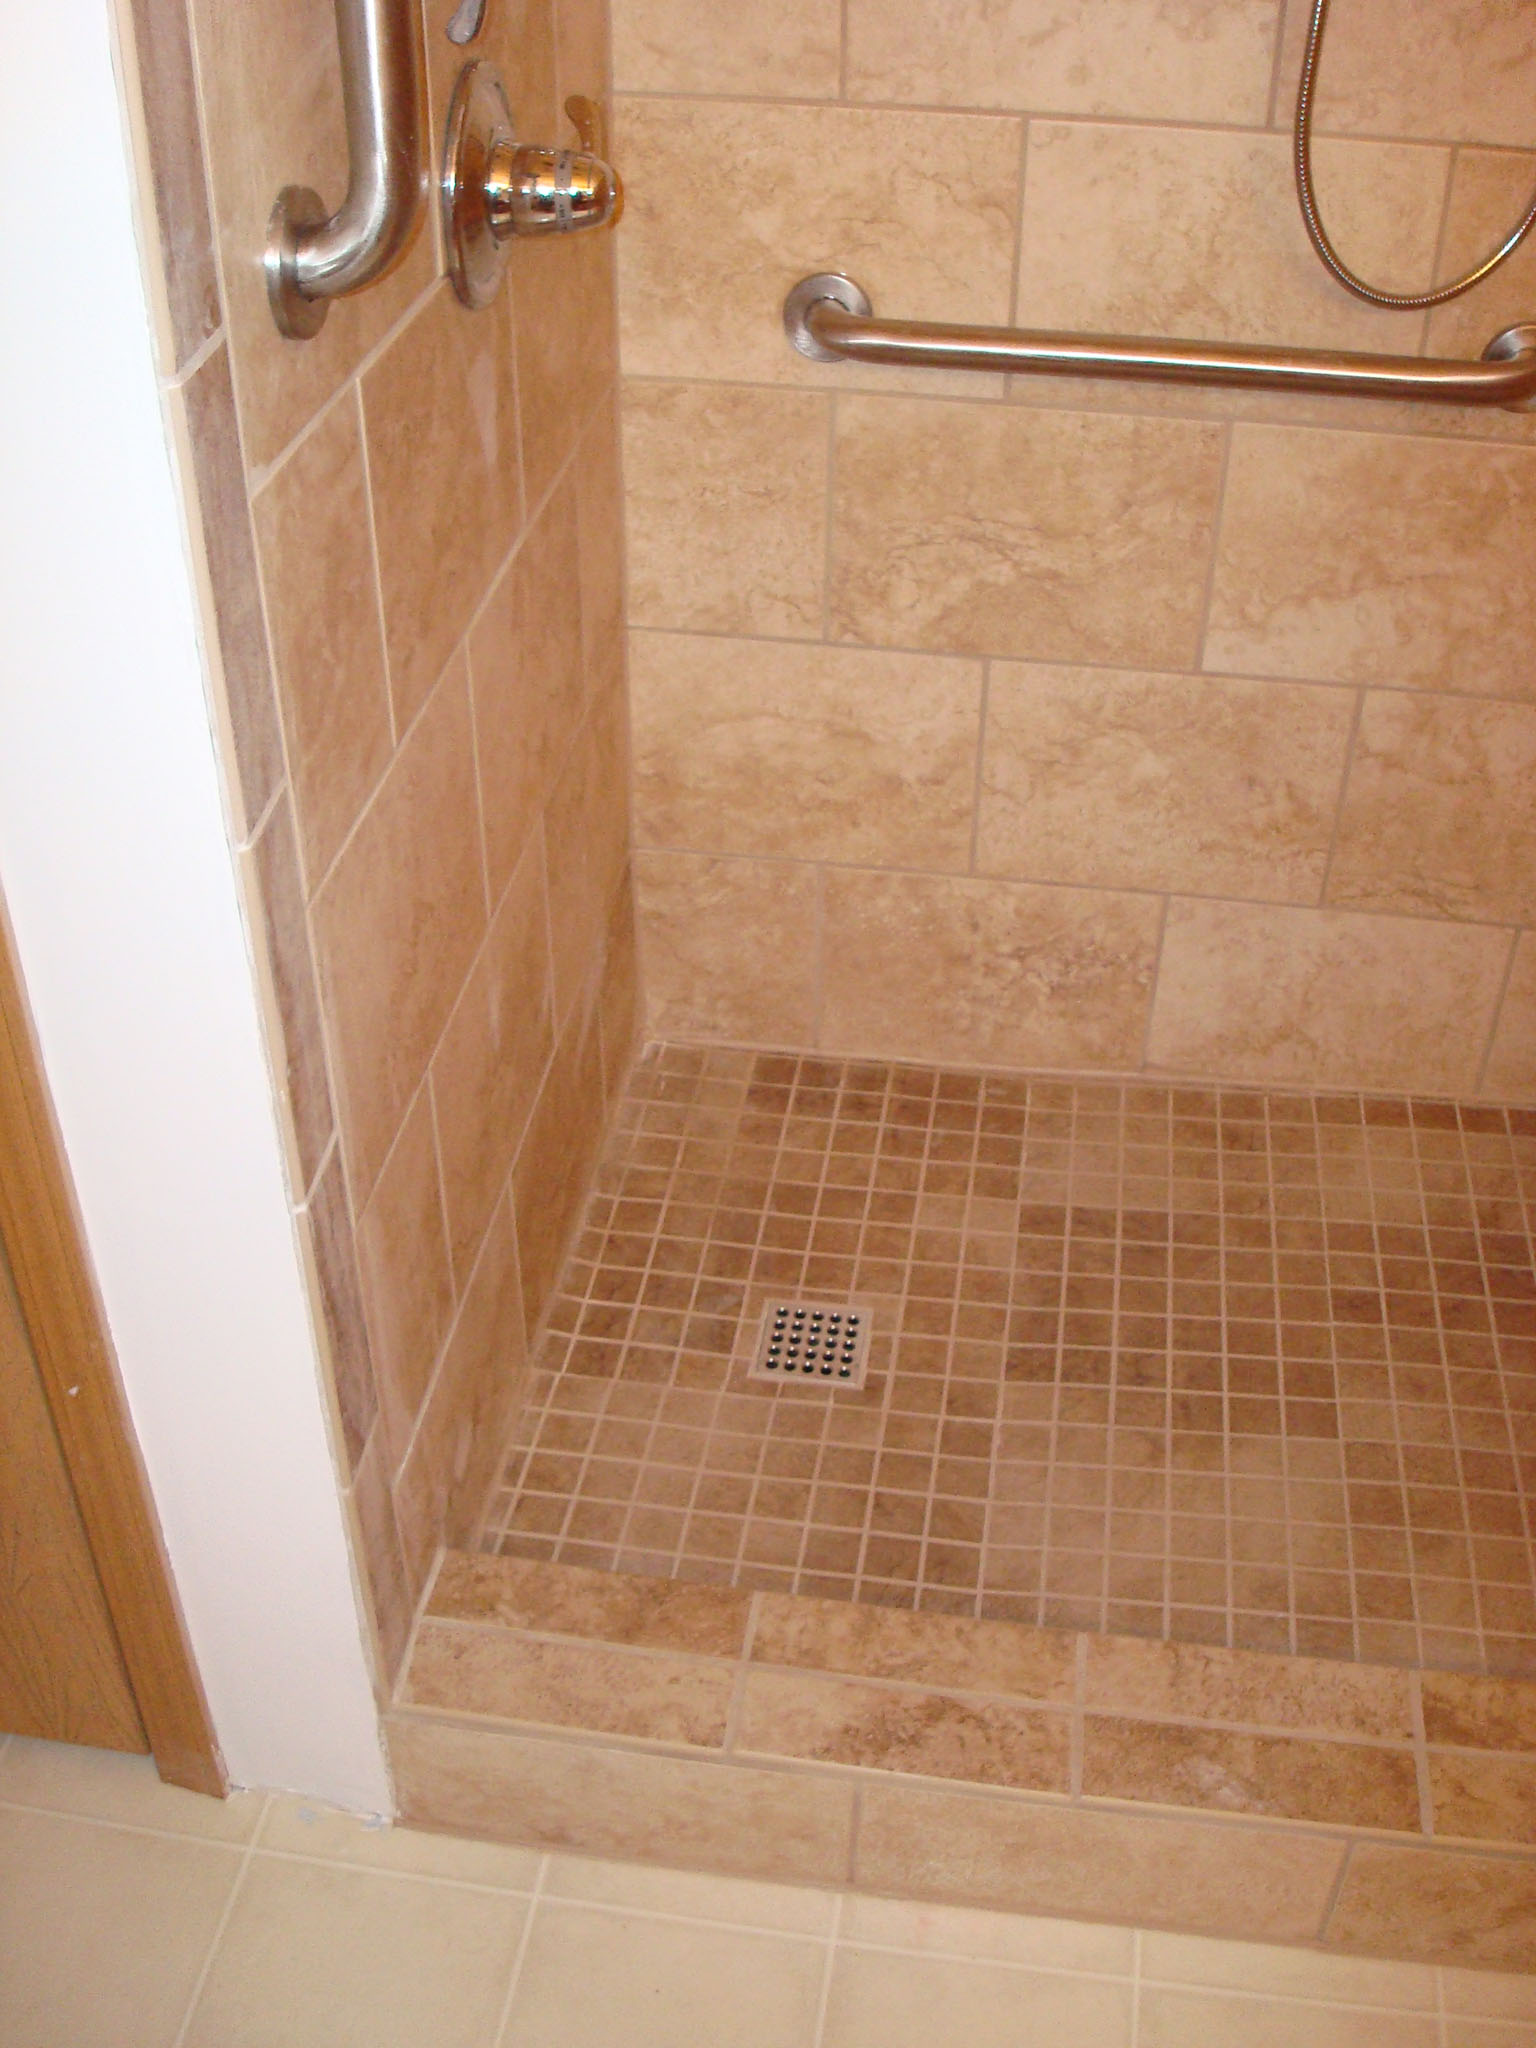 Remarkable Handicap Bathroom Remodel 1536 x 2048 · 358 kB · jpeg